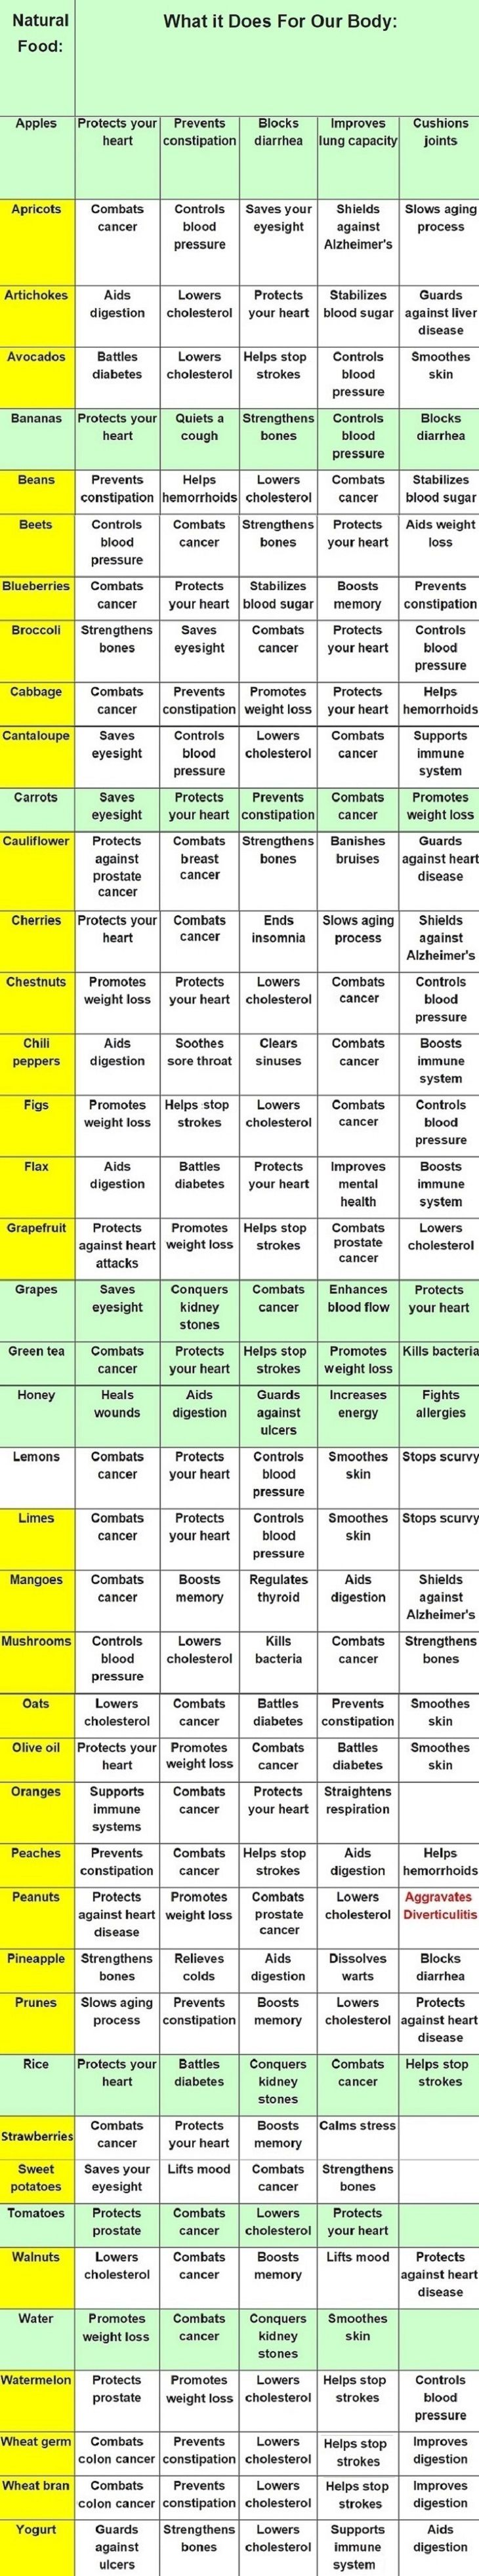 A Guide to Foods and What They Are Good For